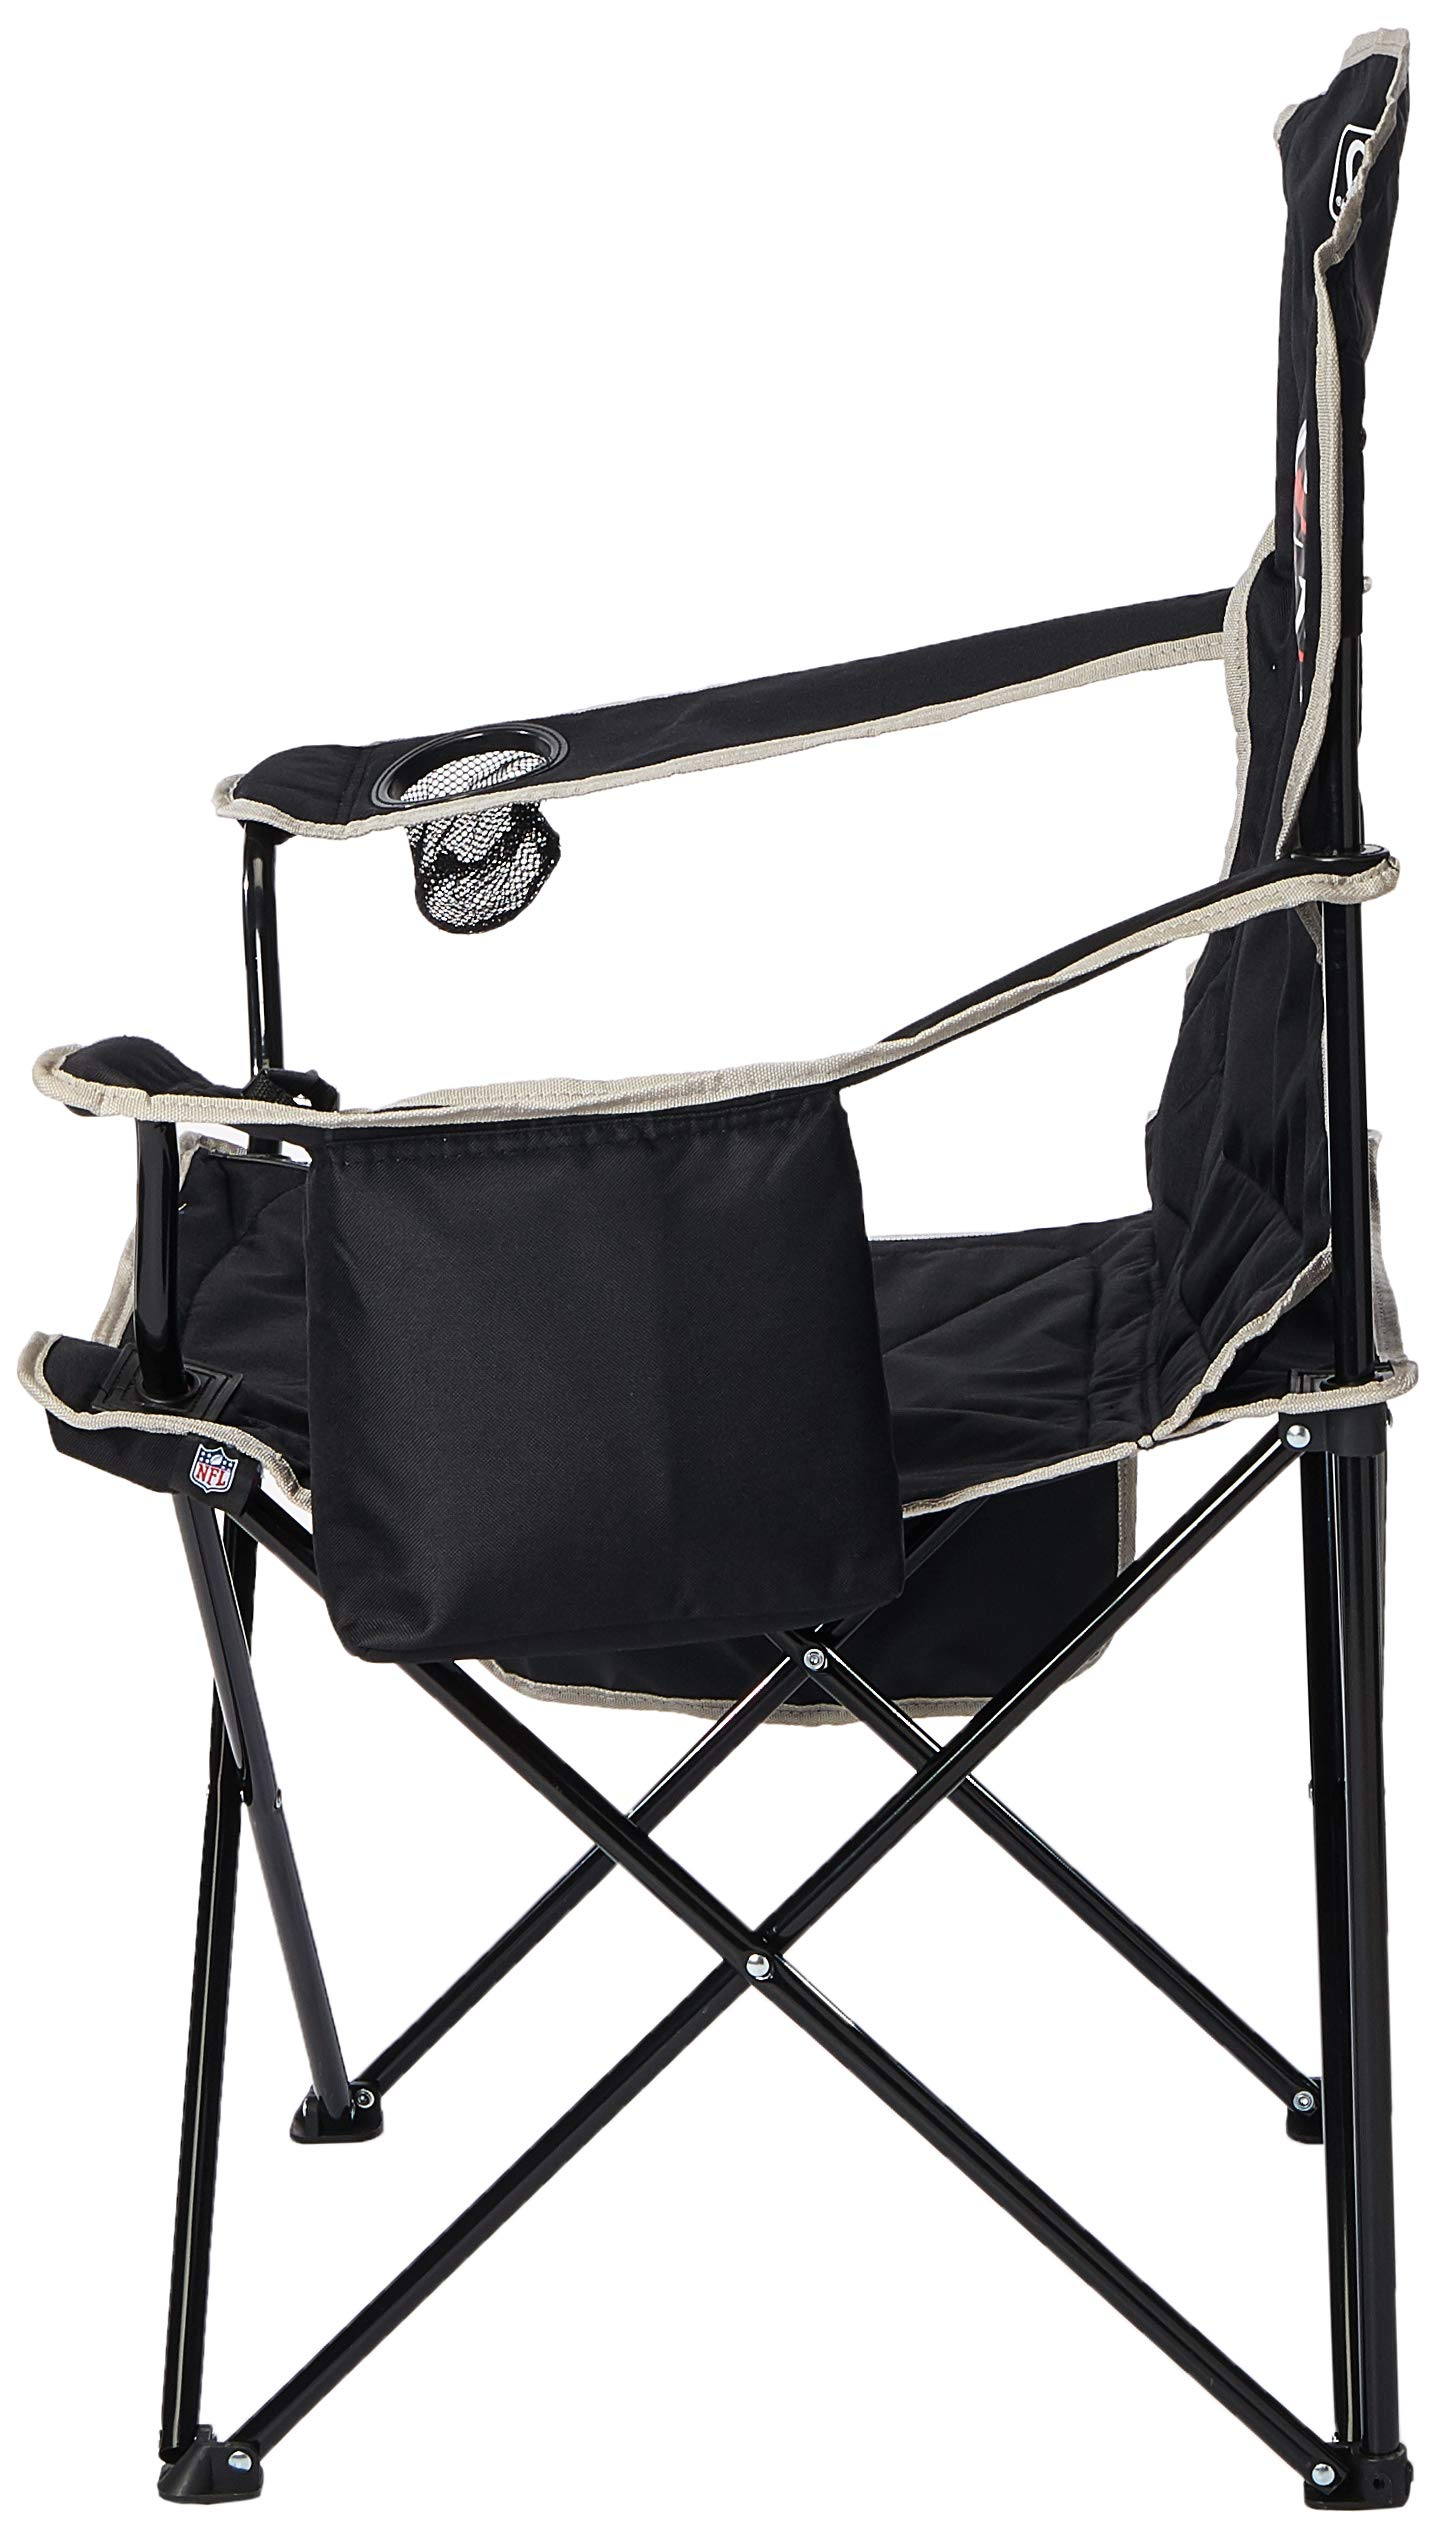 Coleman NFL Cooler Quad Folding Tailgating /& Camping Chair with Built in Cooler and Carrying Case All Team Options